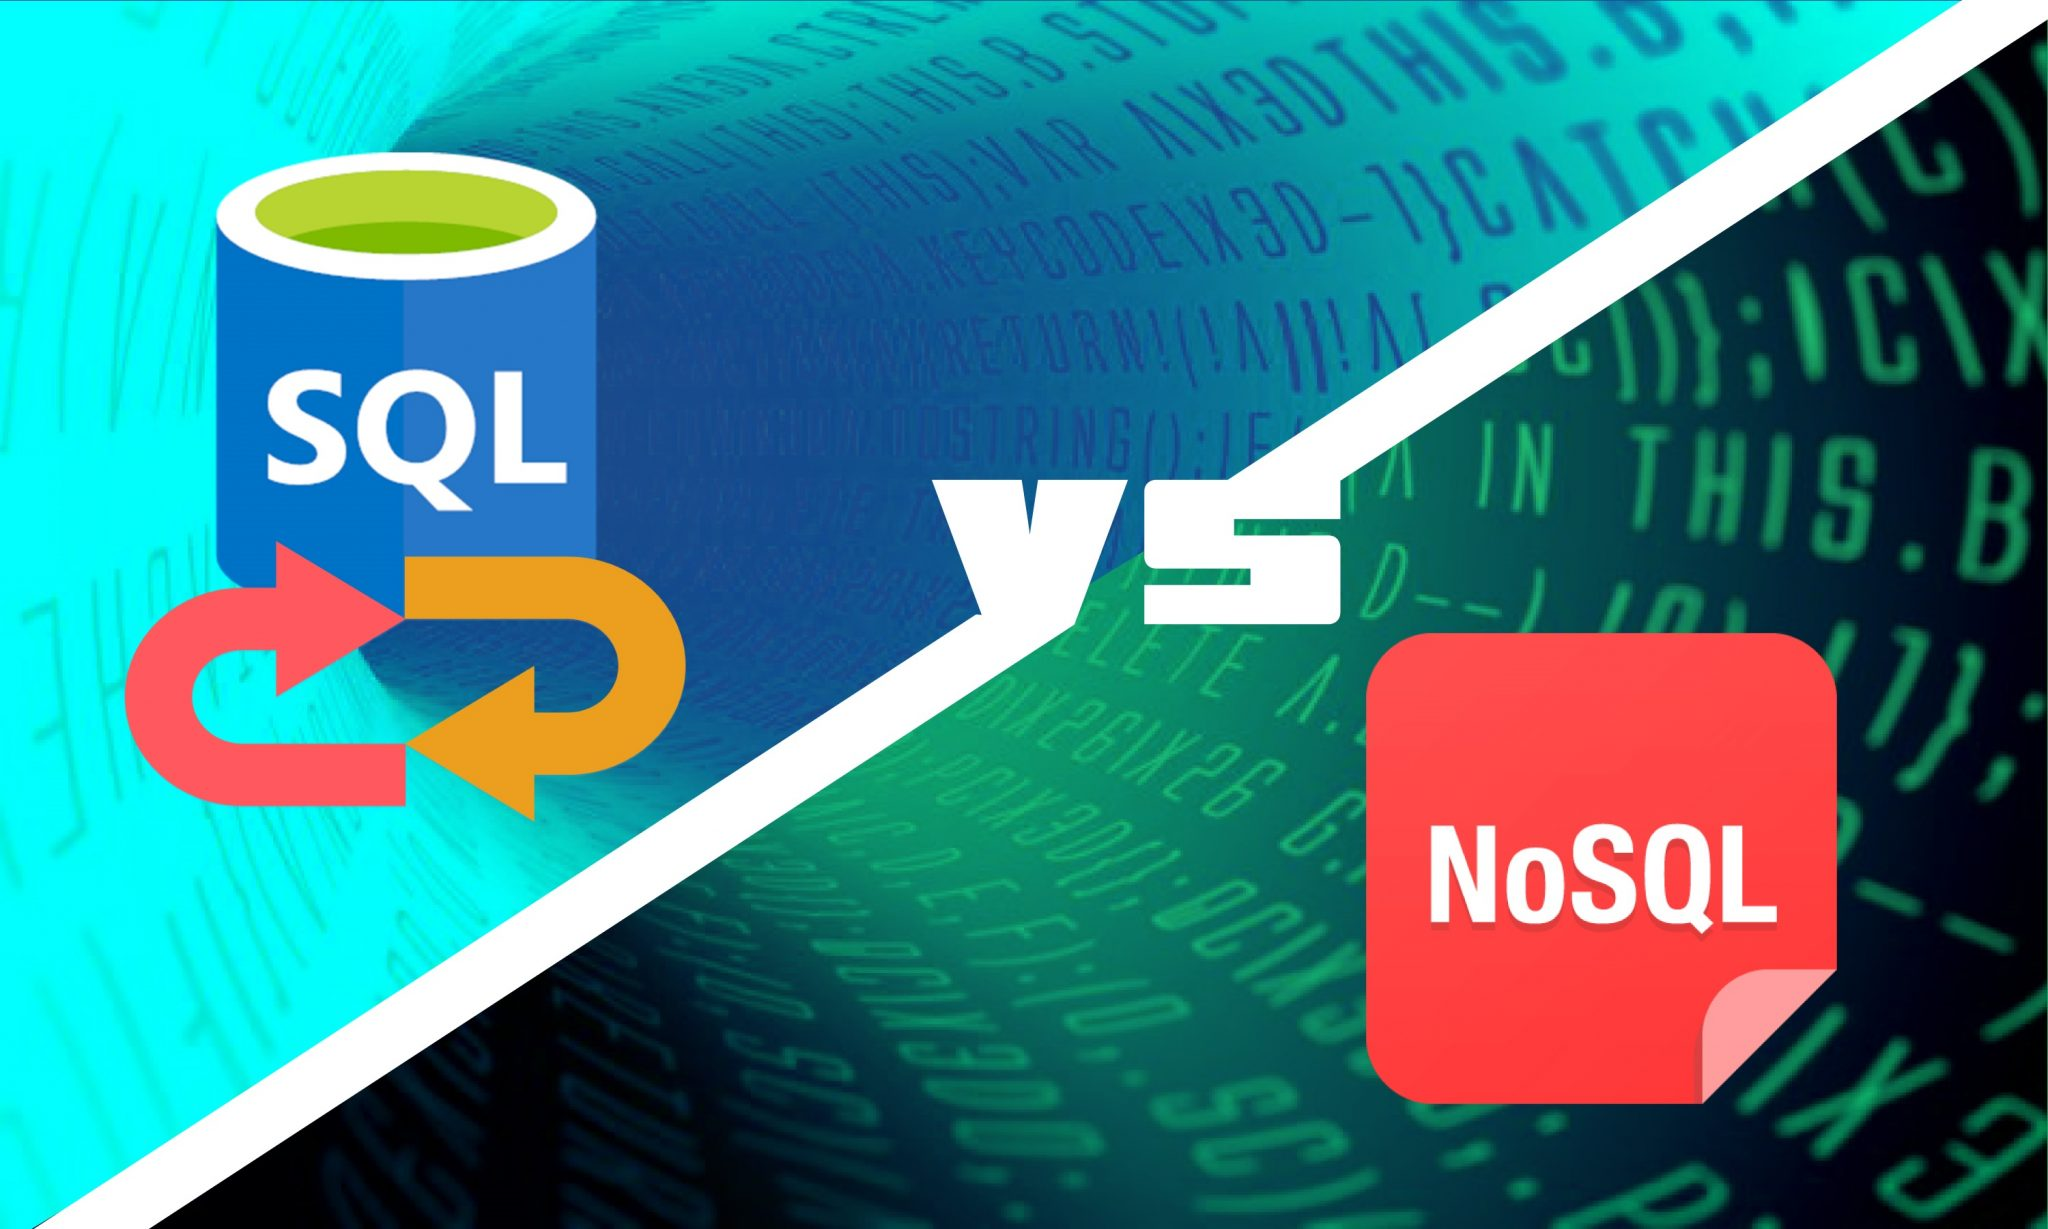 Nosql Vs Sql Which Database Is Better For Big Data Applications